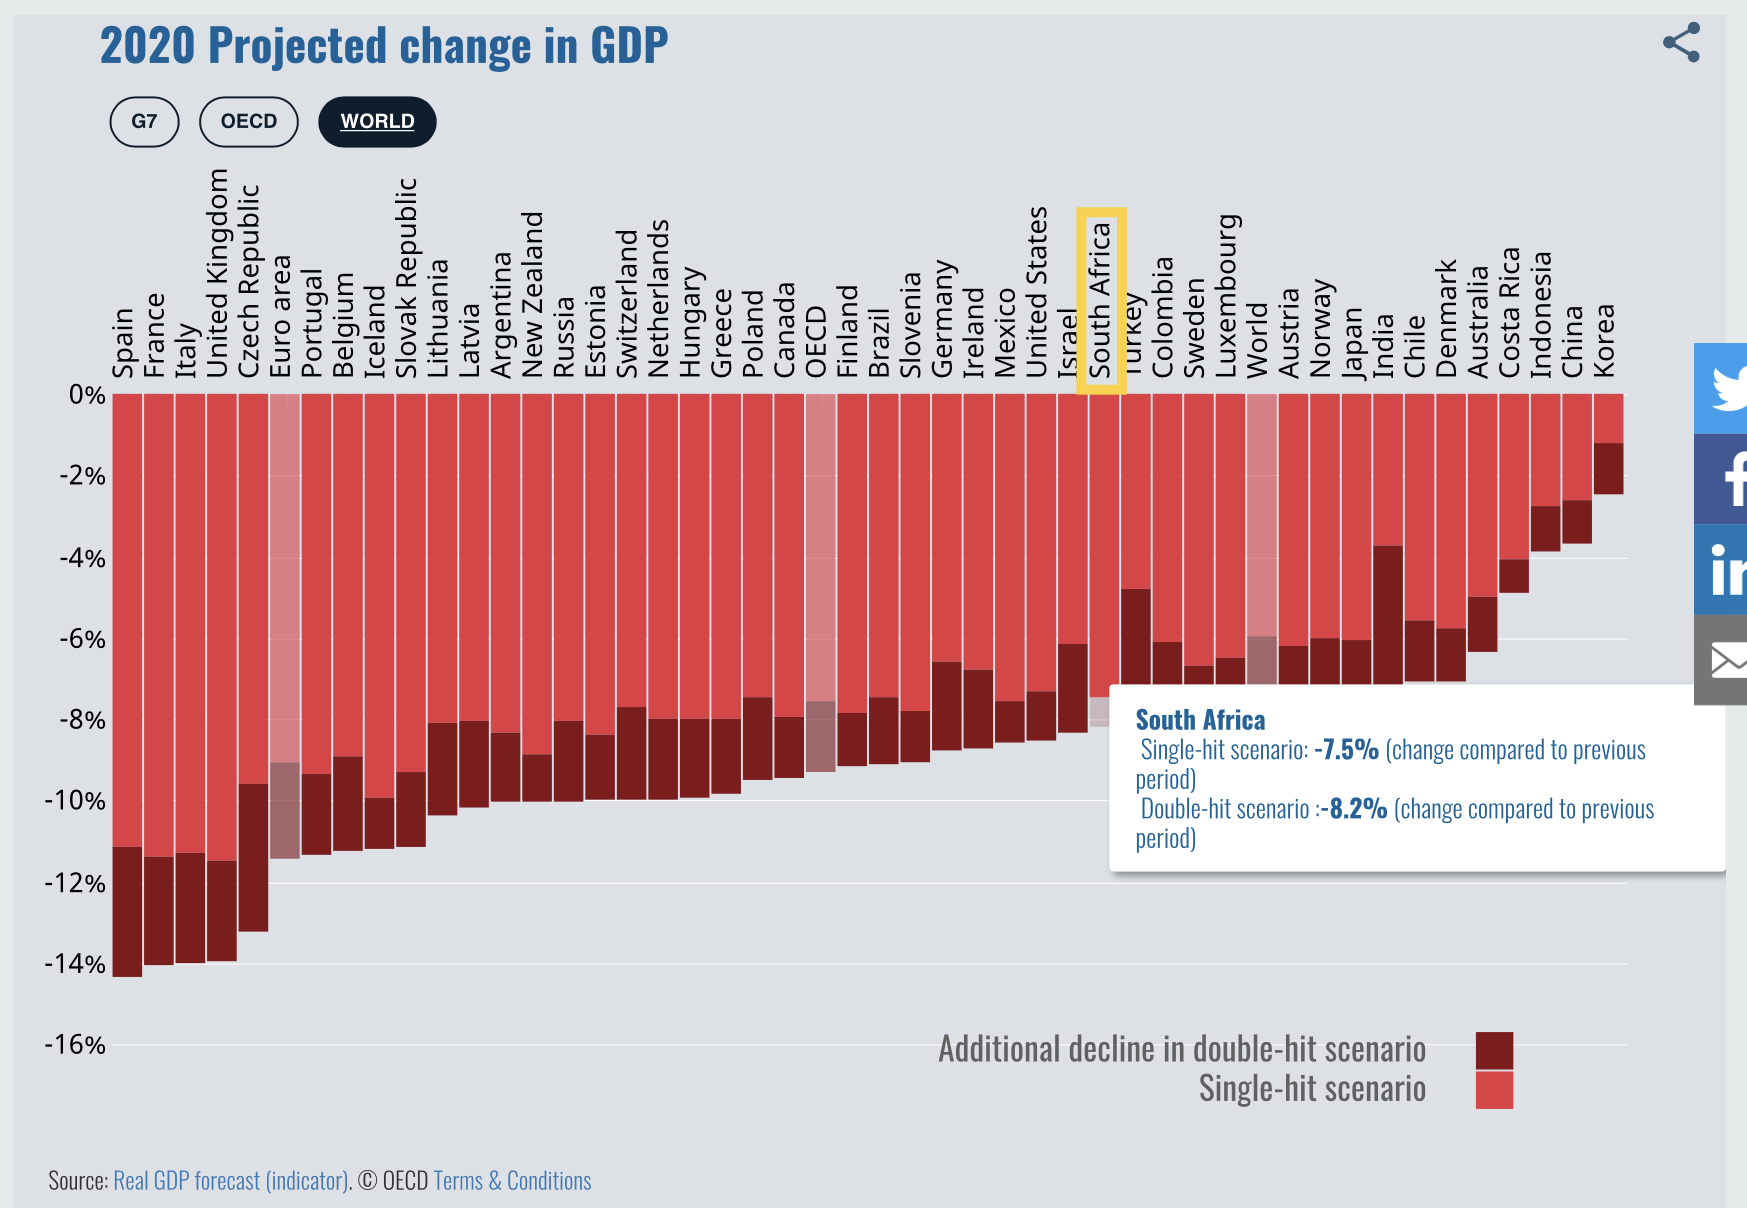 Projected change in GDP